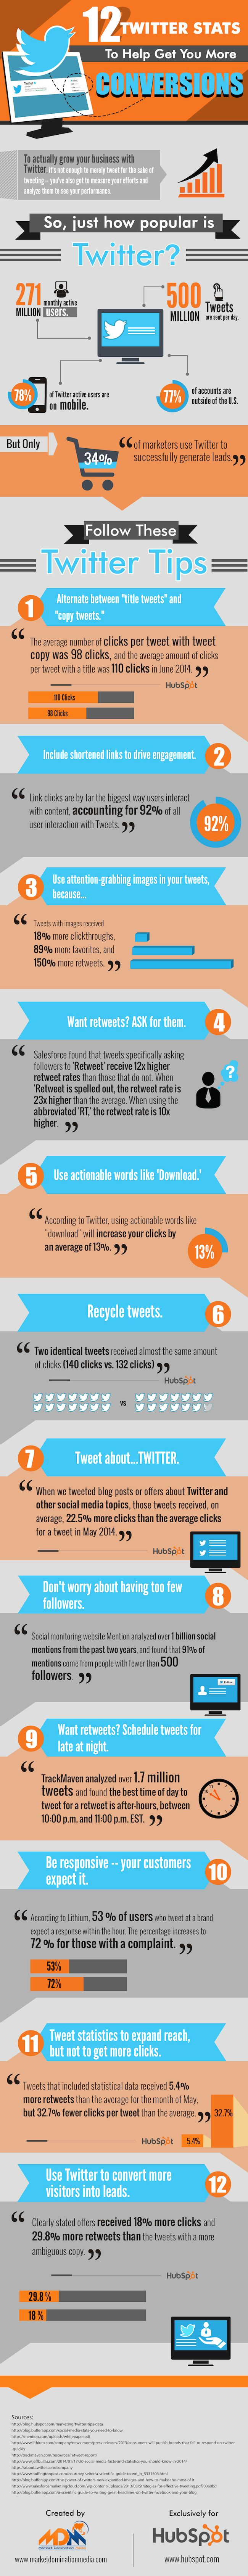 12 Data Backed Tips To Increase Your Conversion Rate On Twitter Infographic Twitter Marketing Twitter Marketing Strategy Twitter For Business